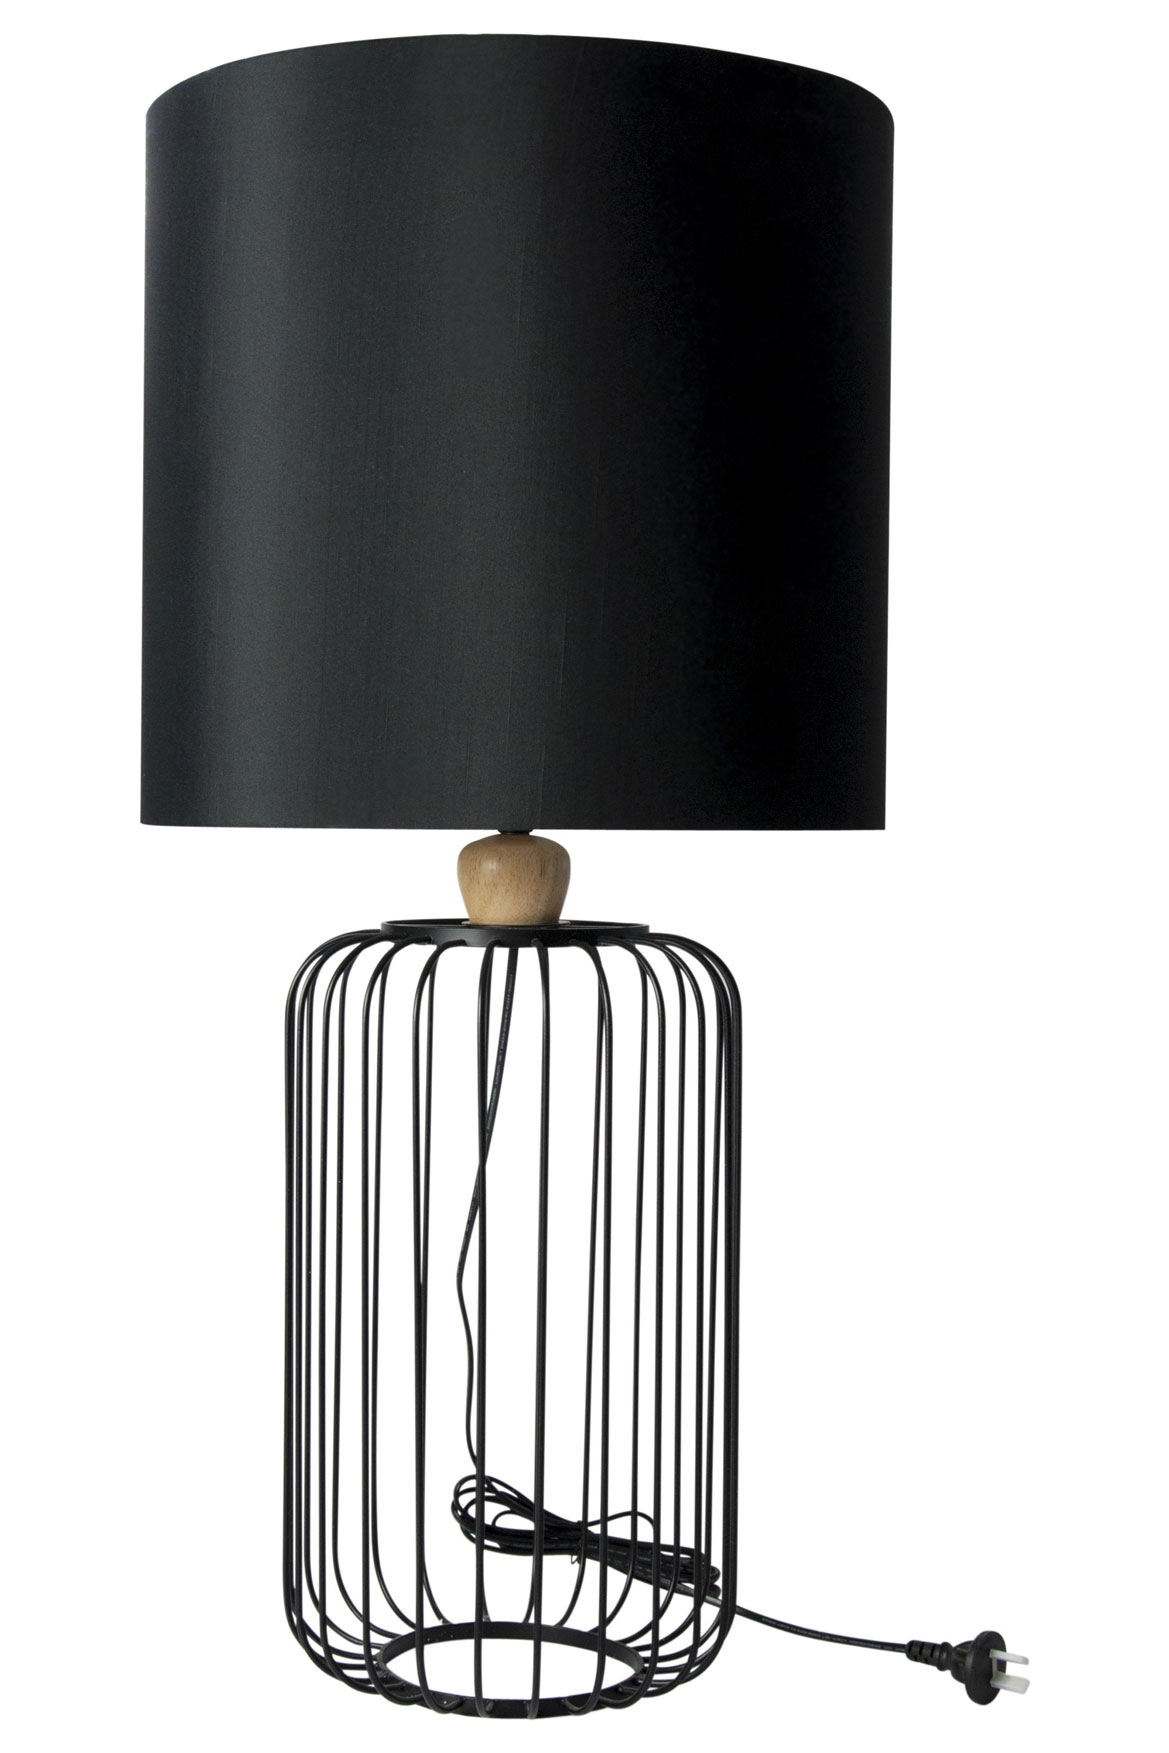 Table lamps myer best inspiration for table lamp saltpepper mood 86cm black wire metal table lamp myer online keyboard keysfo Choice Image